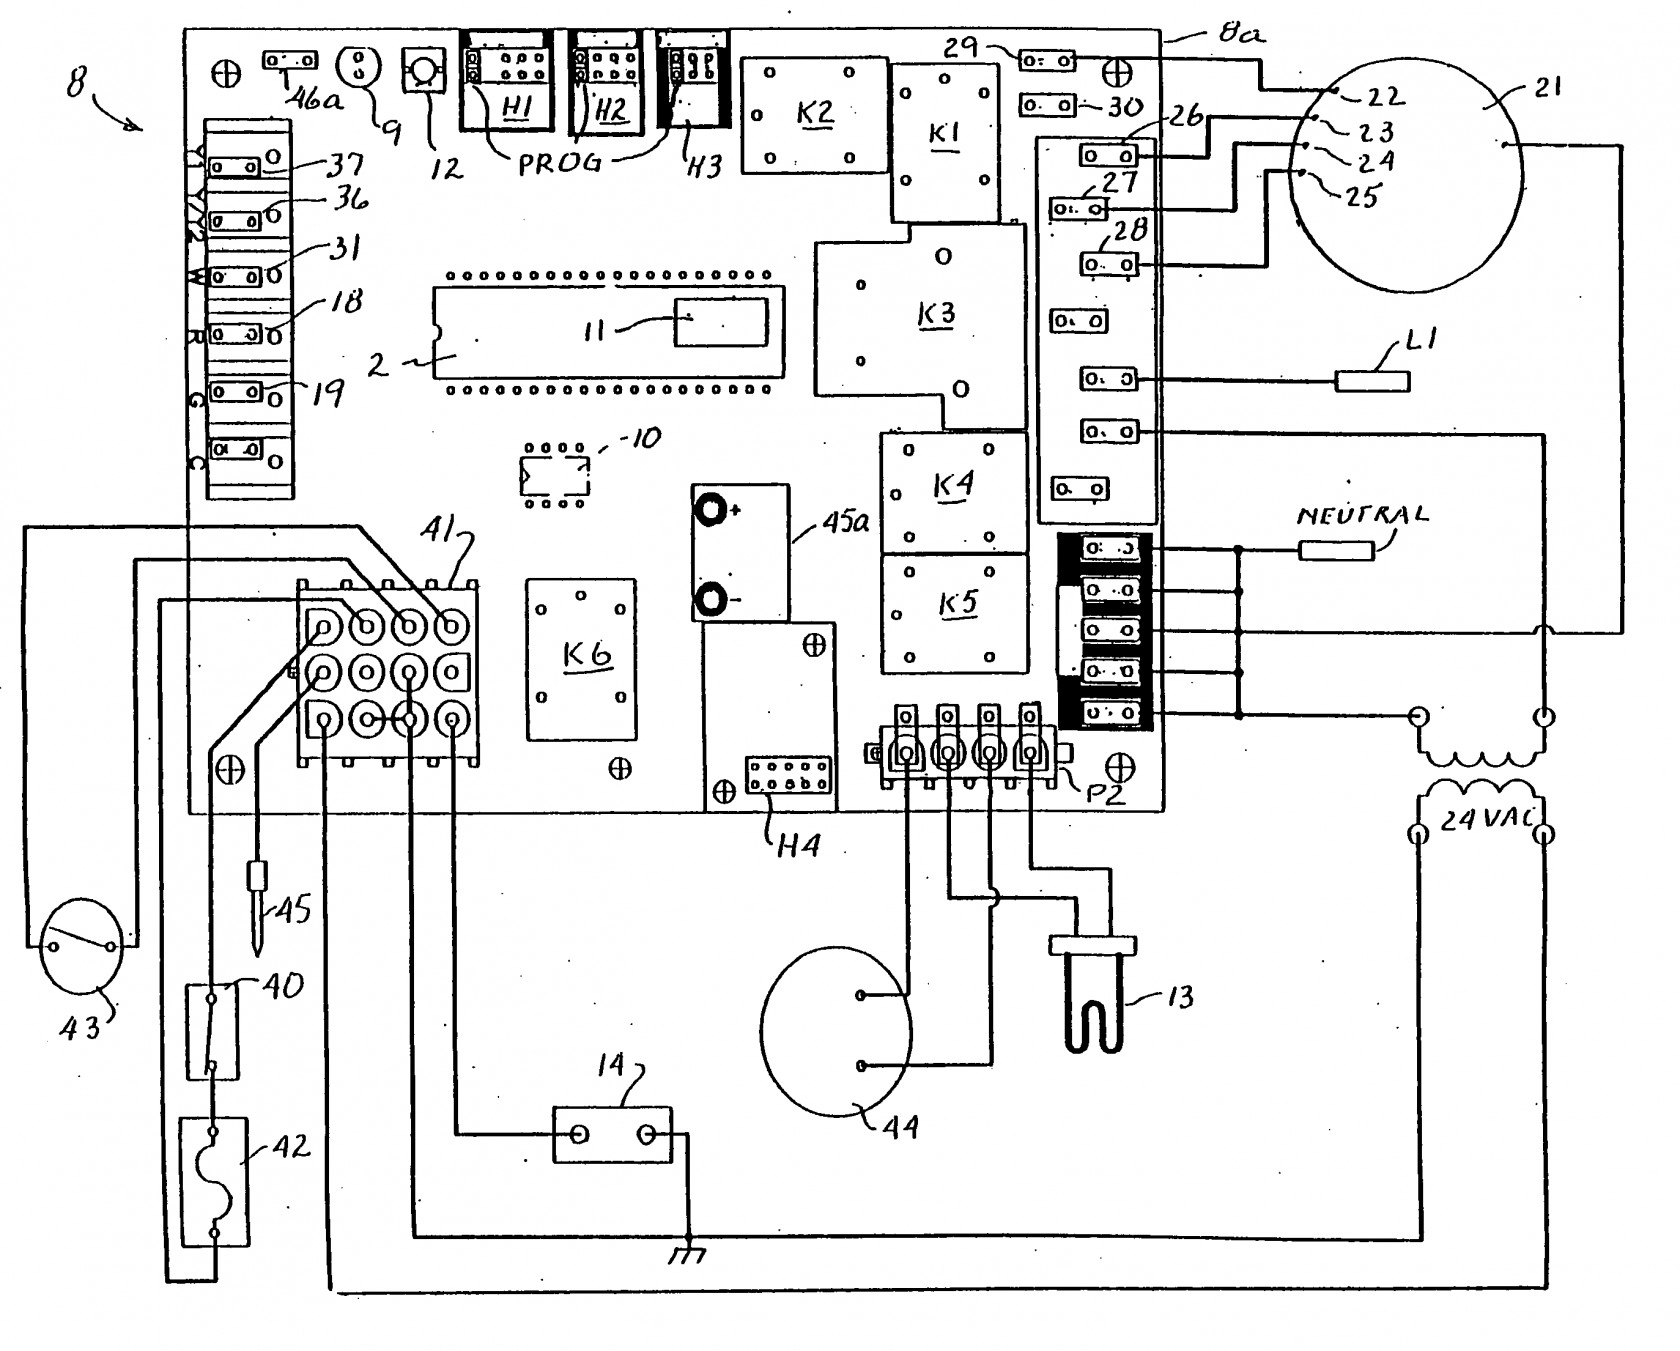 Goodman Gas Furnace Wiring Diagram - General Wiring Diagram